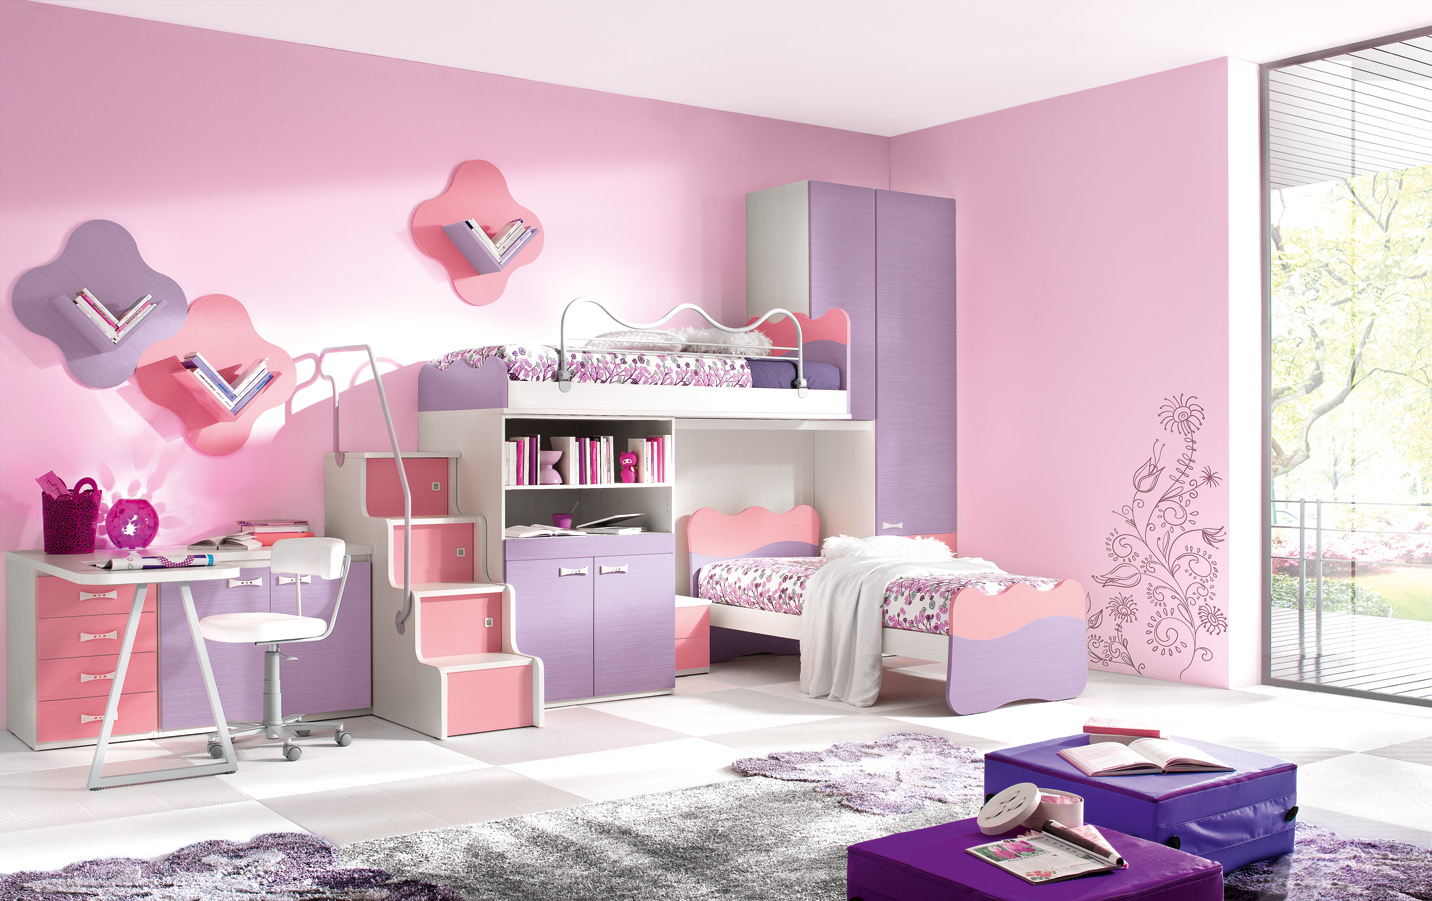 Kids Bedroom Designs. Delightful Modern Kids Bedroom With Bunk Beds ...